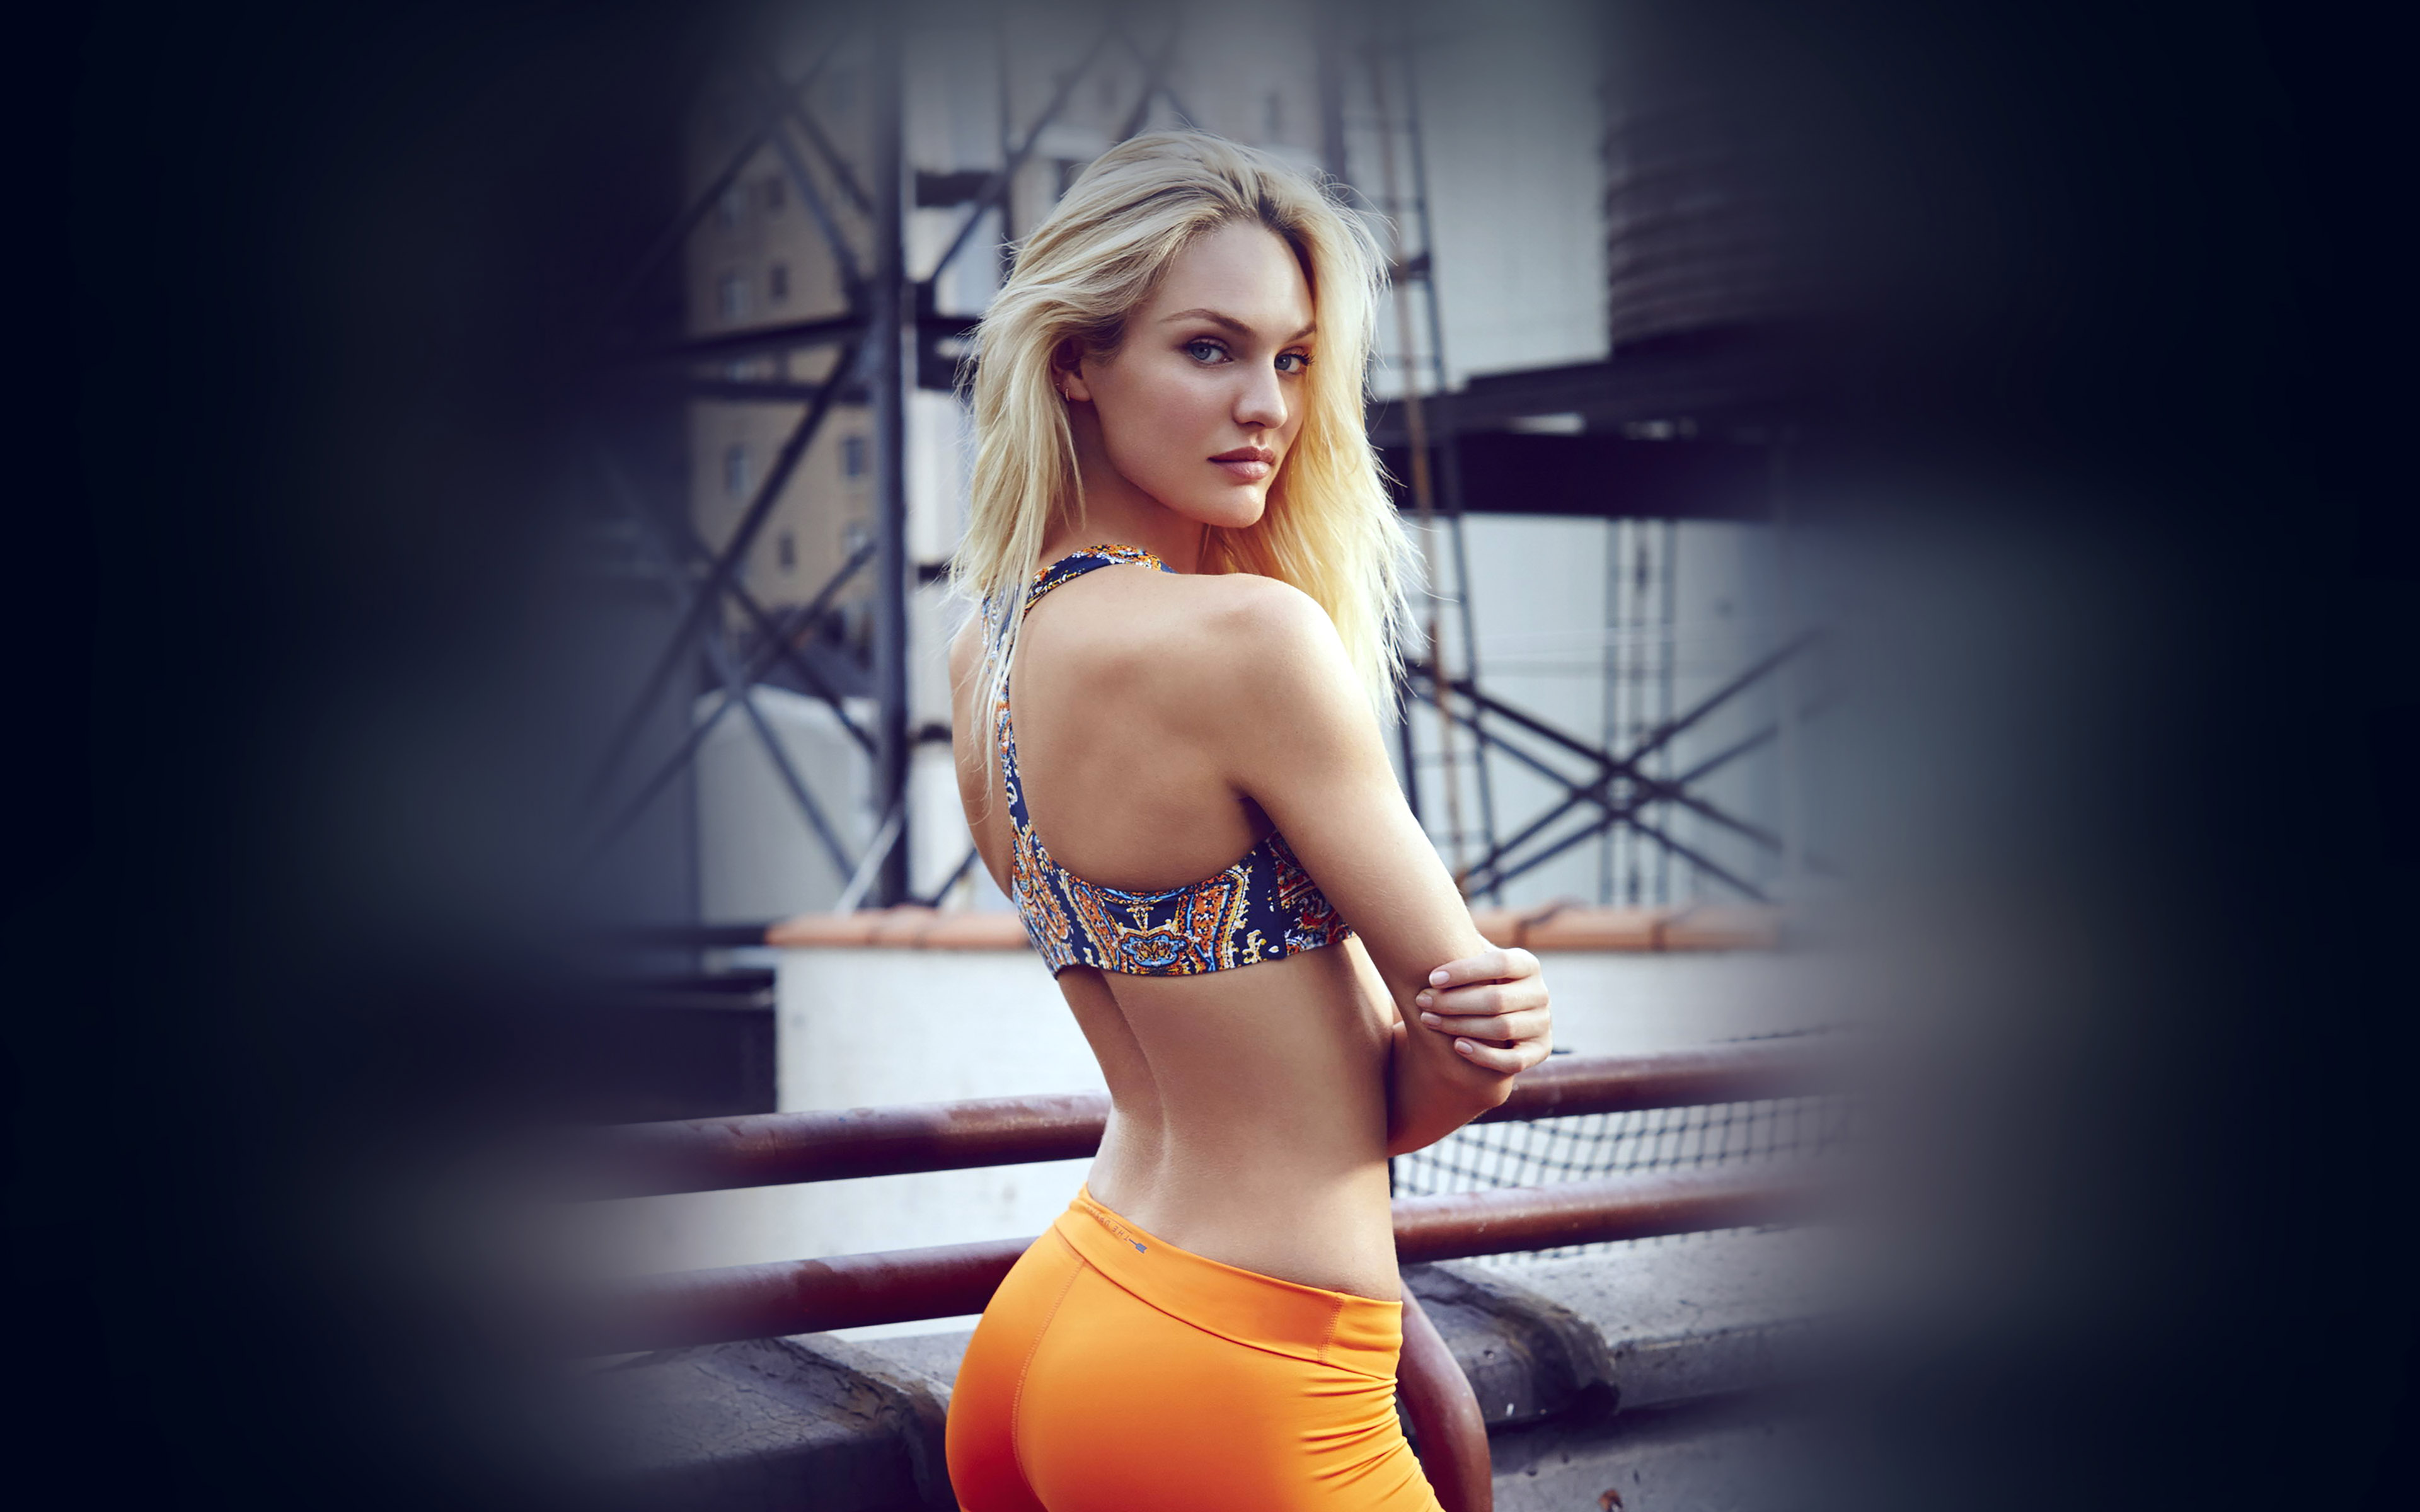 He45 Blonde Sexy Victoria Angel Candice Swanepoel Papers Co